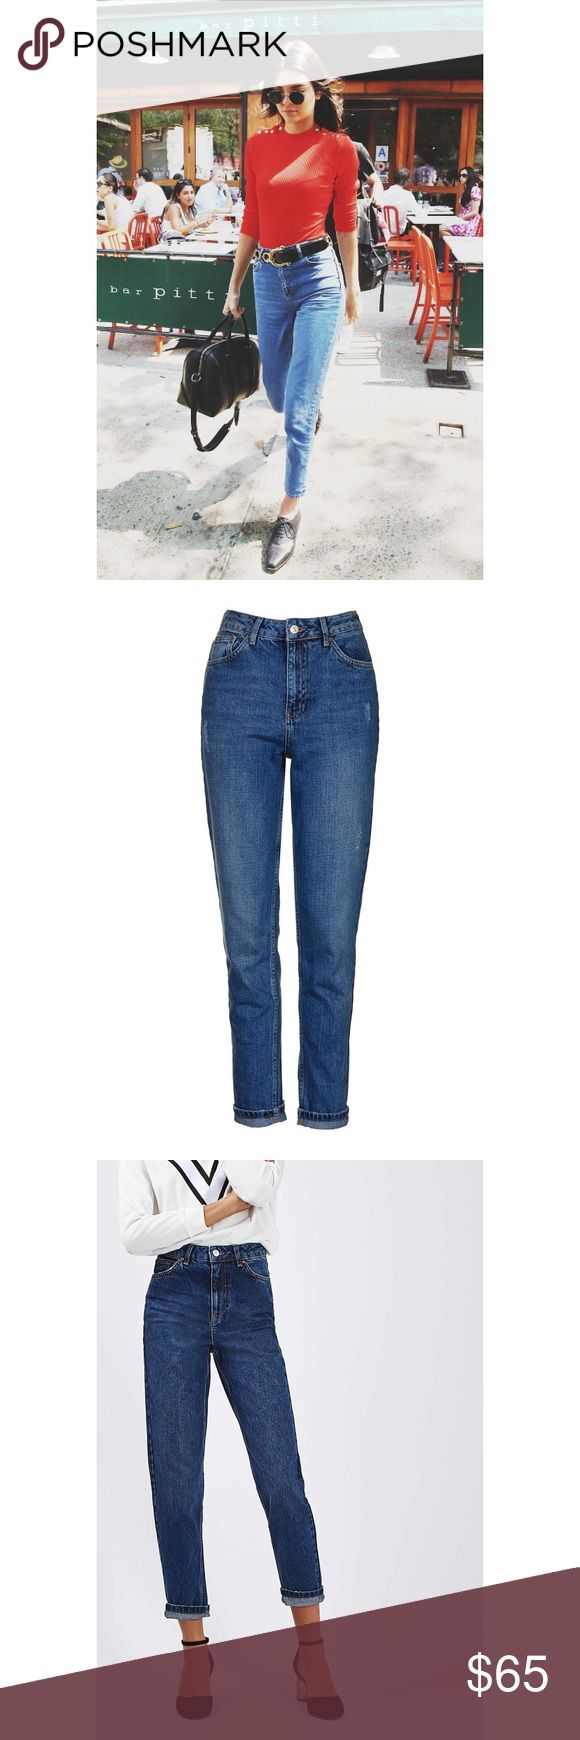 Topshop Moto Mom Jeans Dark blue high waisted mom jeans! As seen on Kendall Jenner. So cute and stylish in every season. These have a roll at the bottom that is tacked down but you can that out with a seam ripper. Worn a few times but I have too many jeans Topshop Jeans Ankle & Cropped